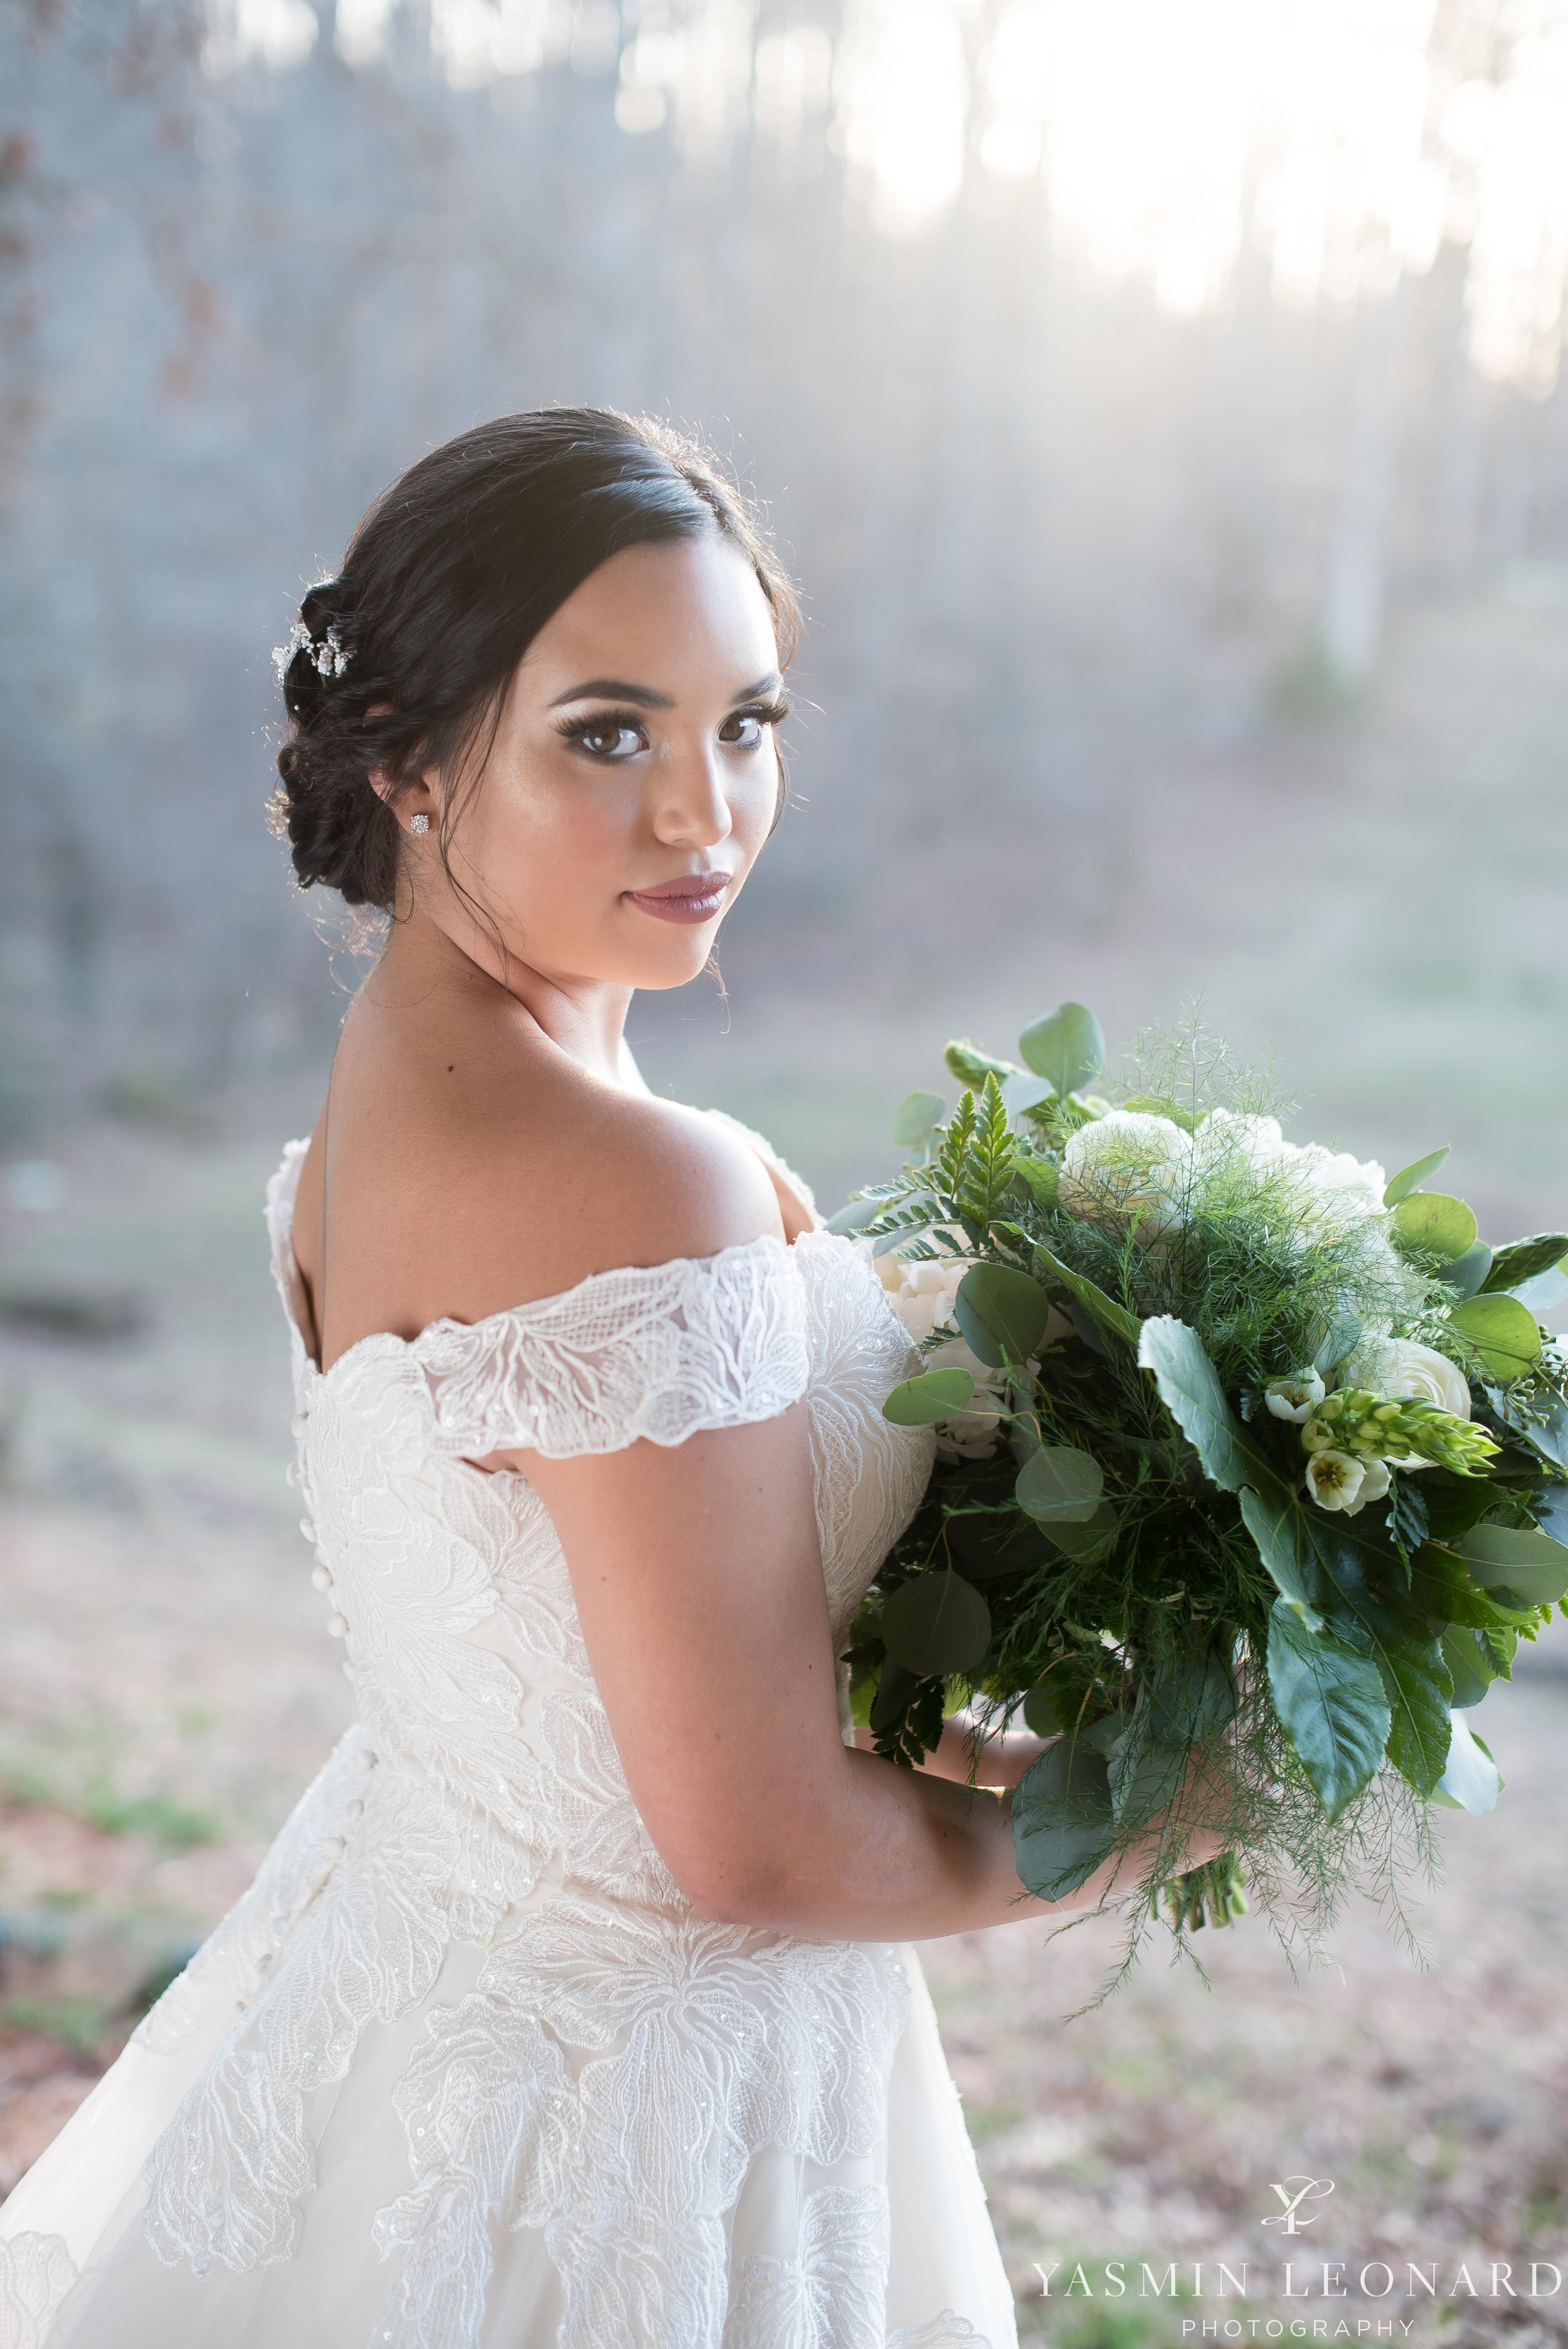 Old Homeplace Vineyard - Grits and Glitter - Dashing Dames Bridal Boutique - Just Priceless - Yasmin Leonard Photography - High Point Weddings - NC Weddings - NC Wedding Venues - High Point Jewelers - NC Wines - NC Vineyards - Cupcake Cuties-87.jpg